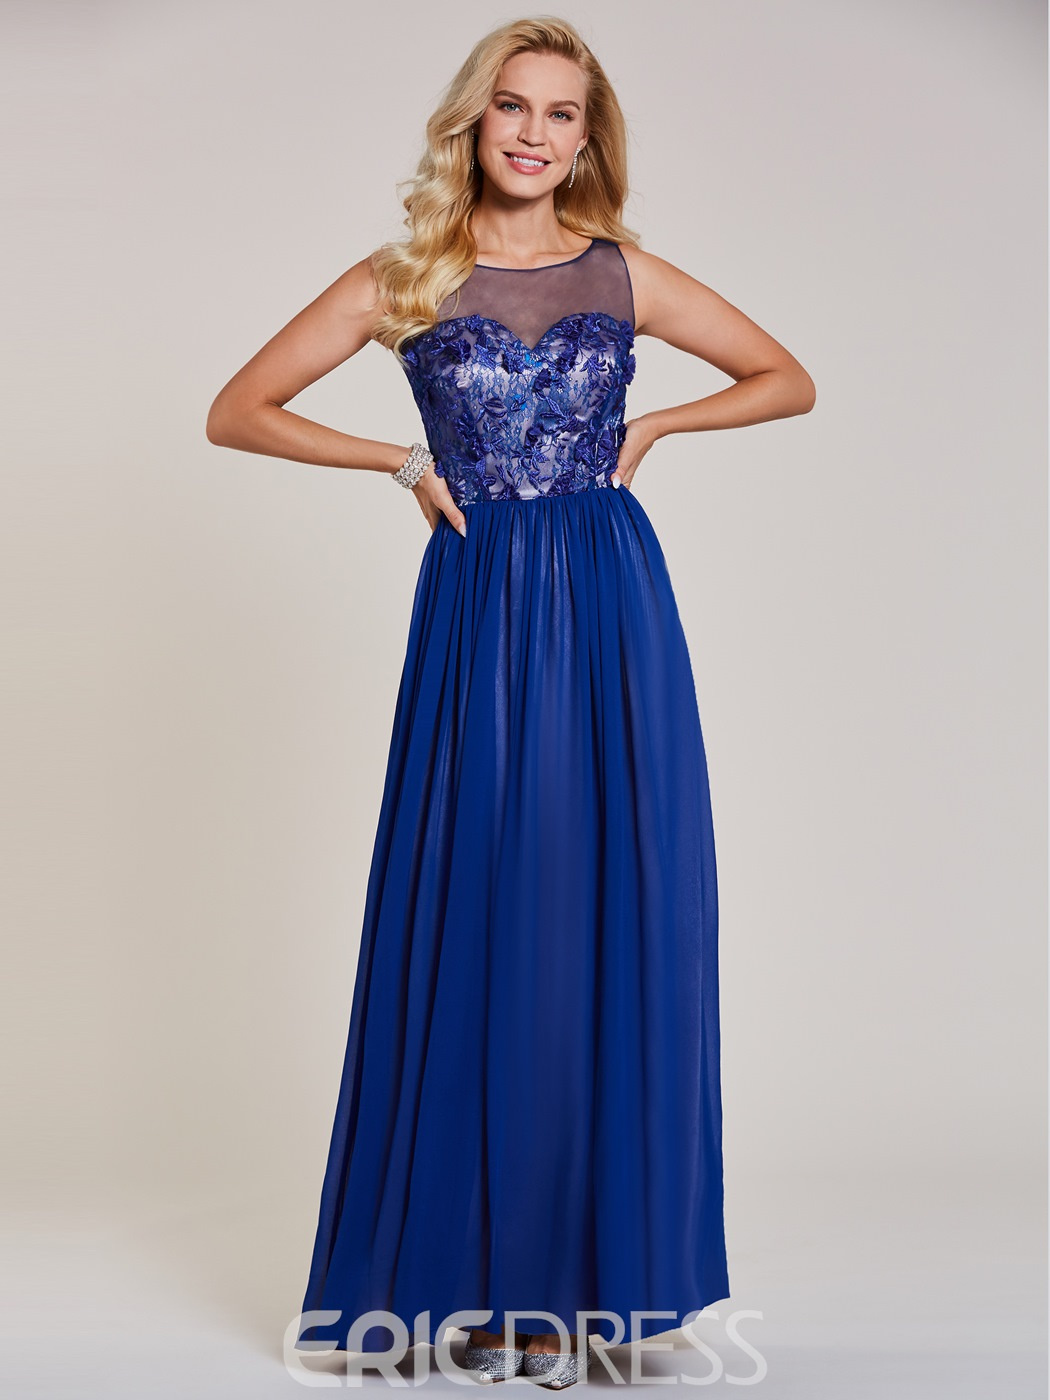 Ericdress Scoop Neck Appliques A Line Long Evening Dress